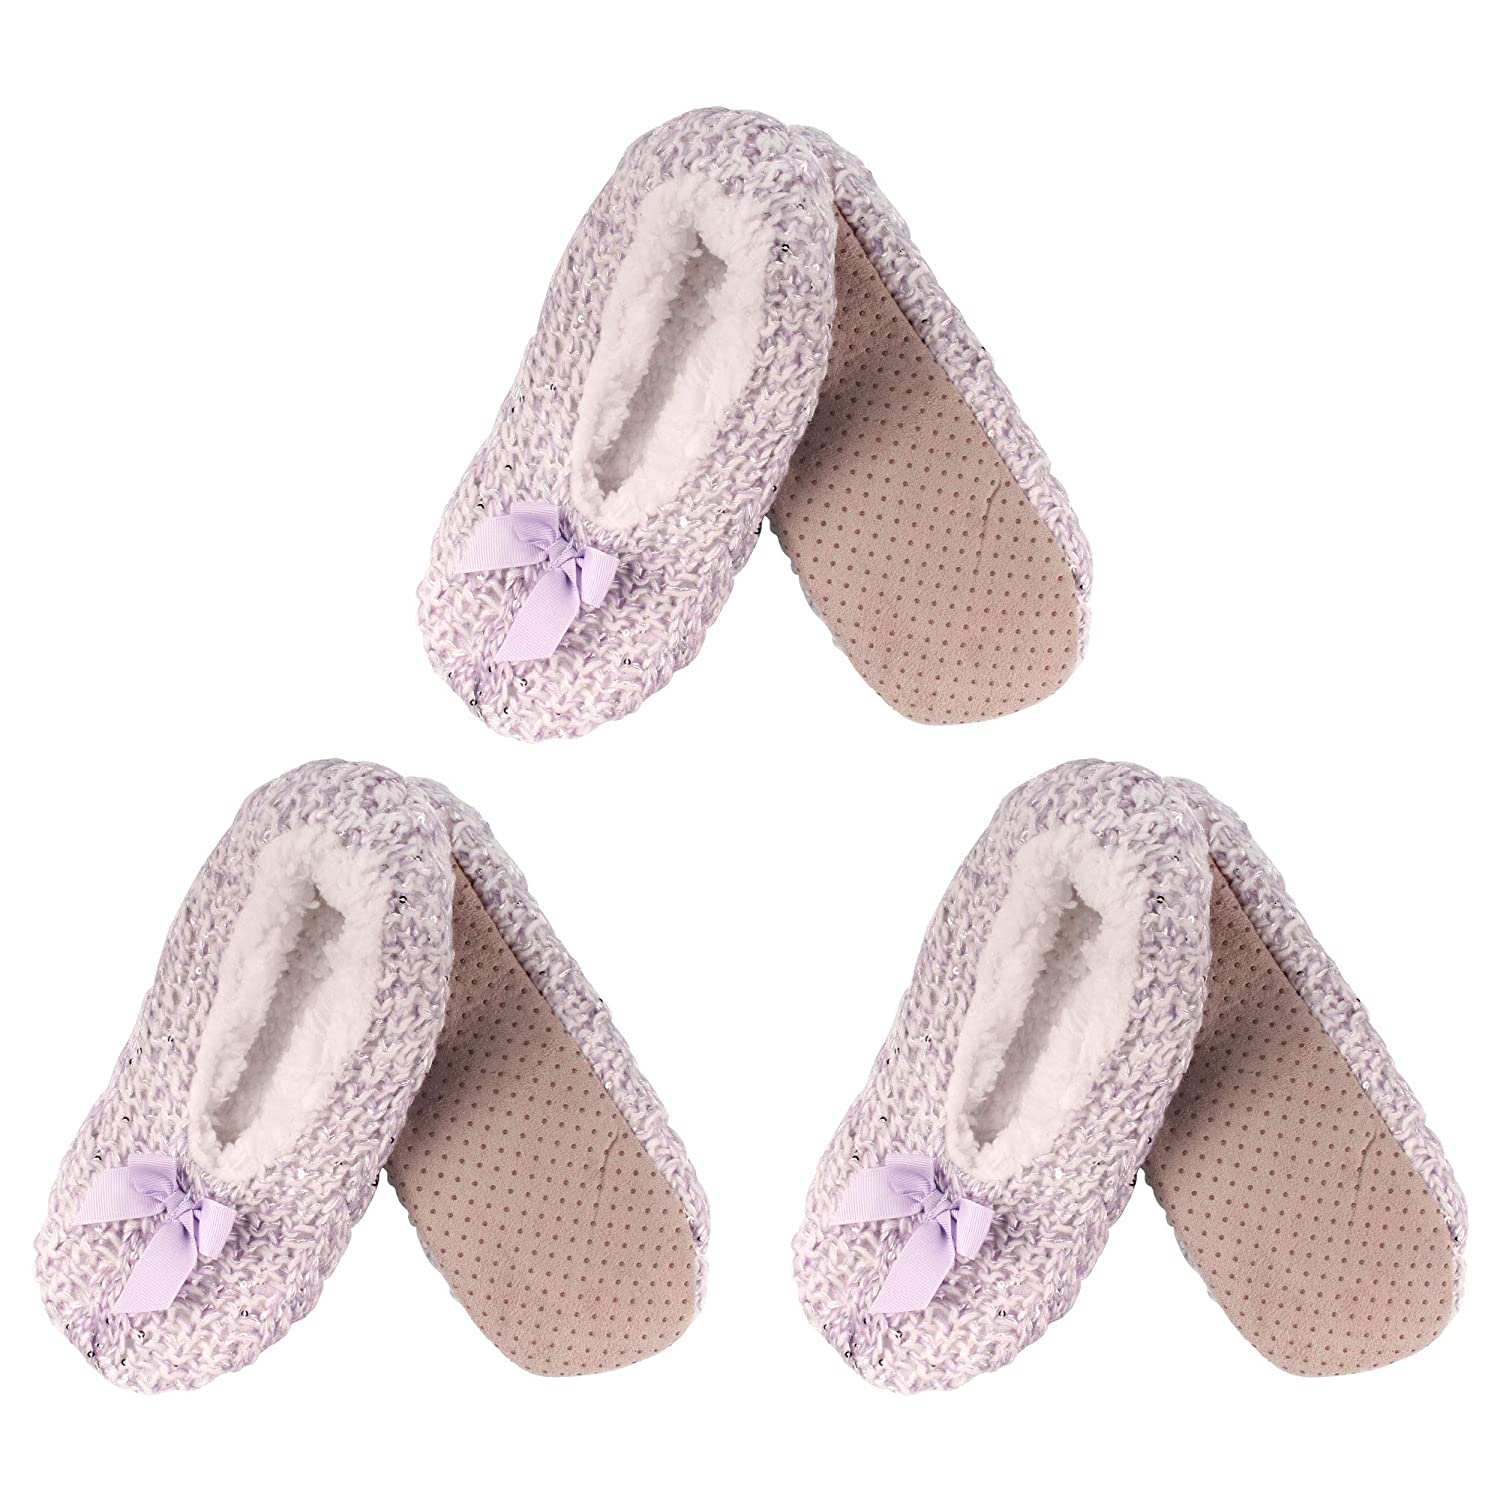 Purple Adult Women's Super Soft Warm Cozy Fuzzy Furry Slippers NonSlip Lined Socks